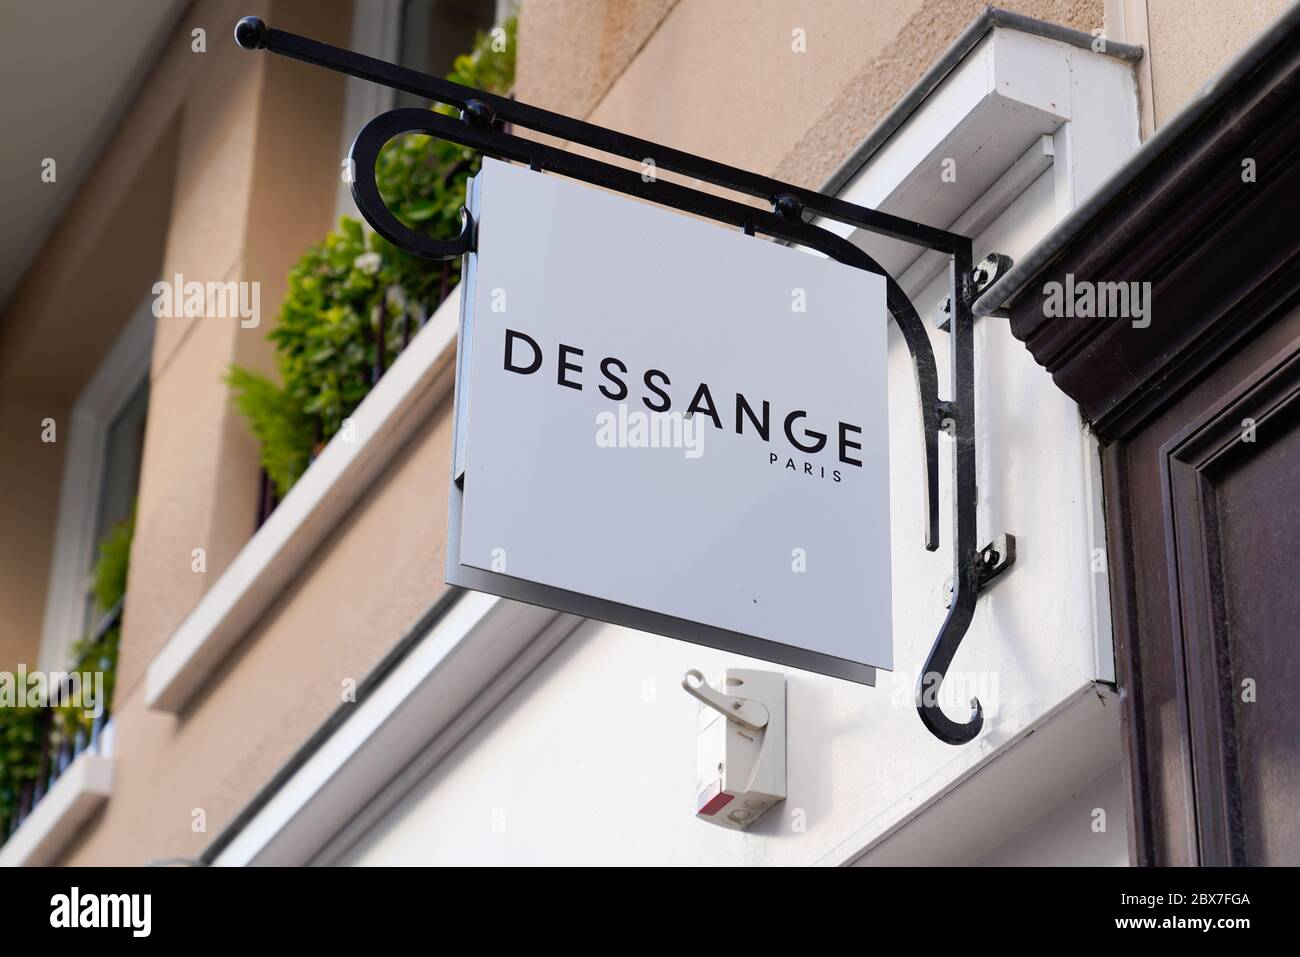 Jacques Dessange High Resolution Stock Photography And Images Alamy